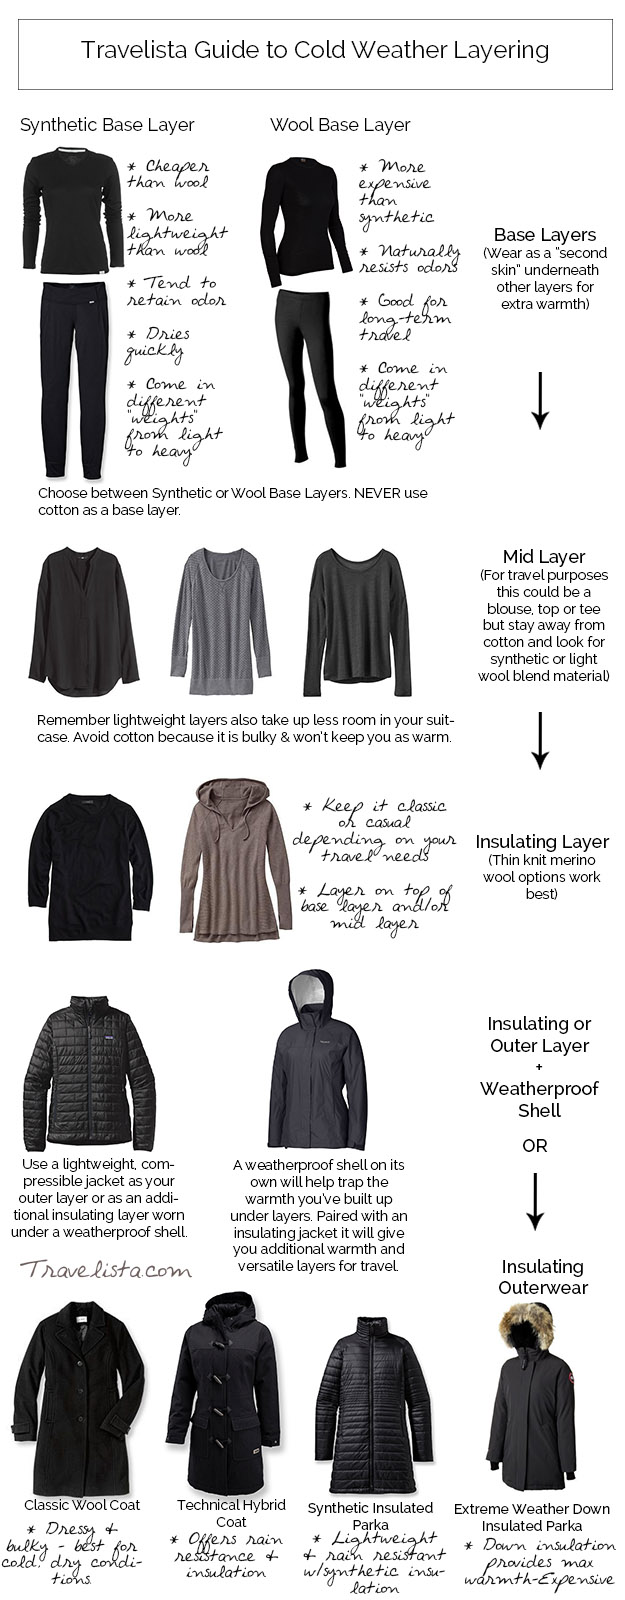 Travelista Guide to Cold Weather Layering